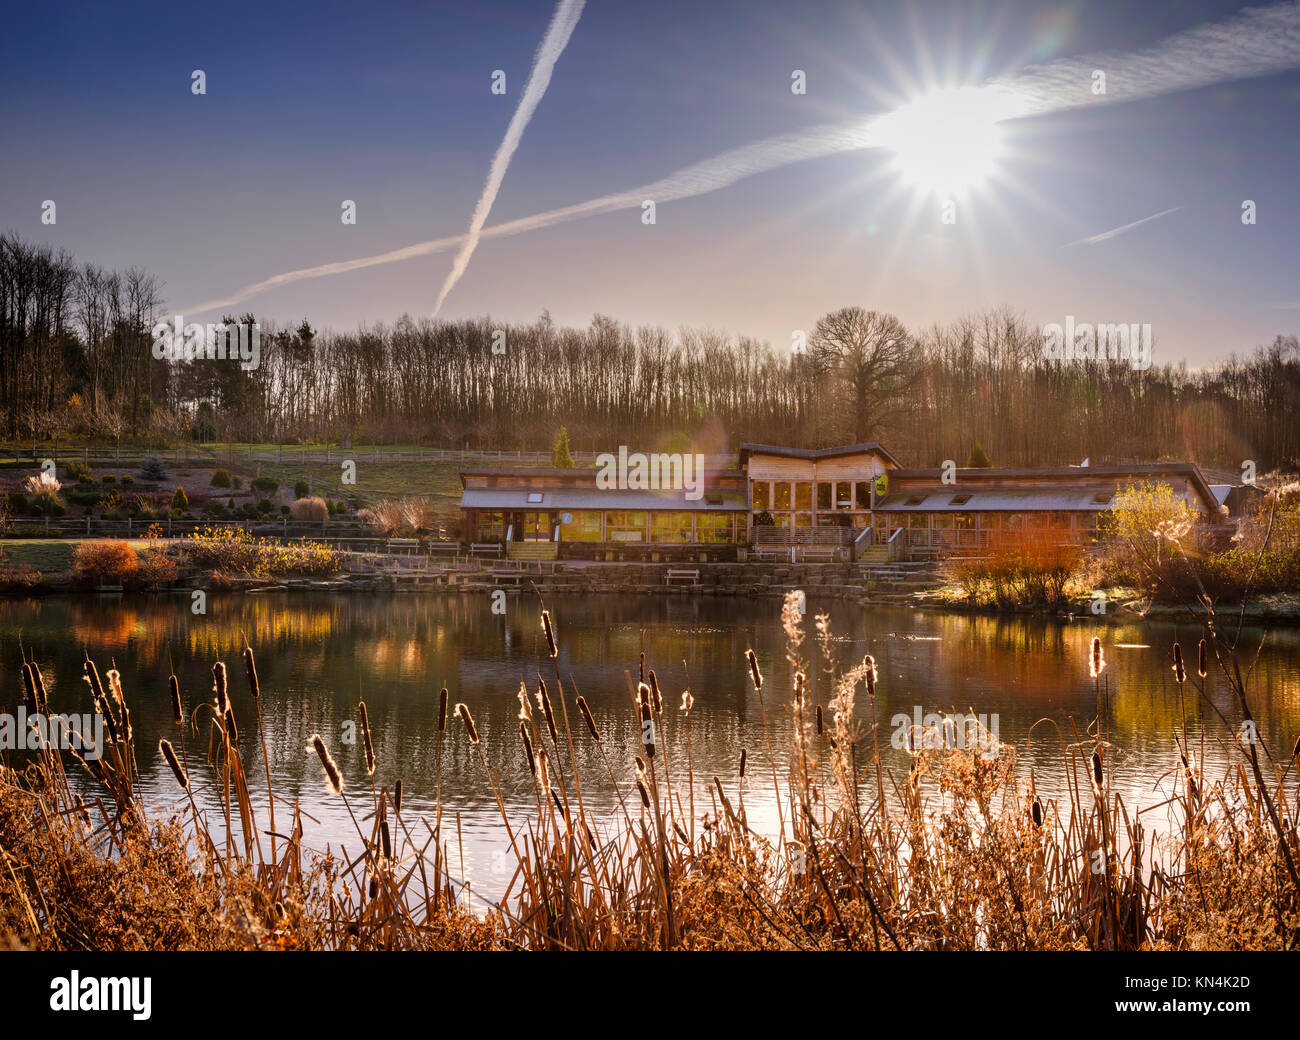 The cafe and visitors centre at the Bedgebury National Pinetum and Forest in on the Sussex, Kent border. - Stock Image